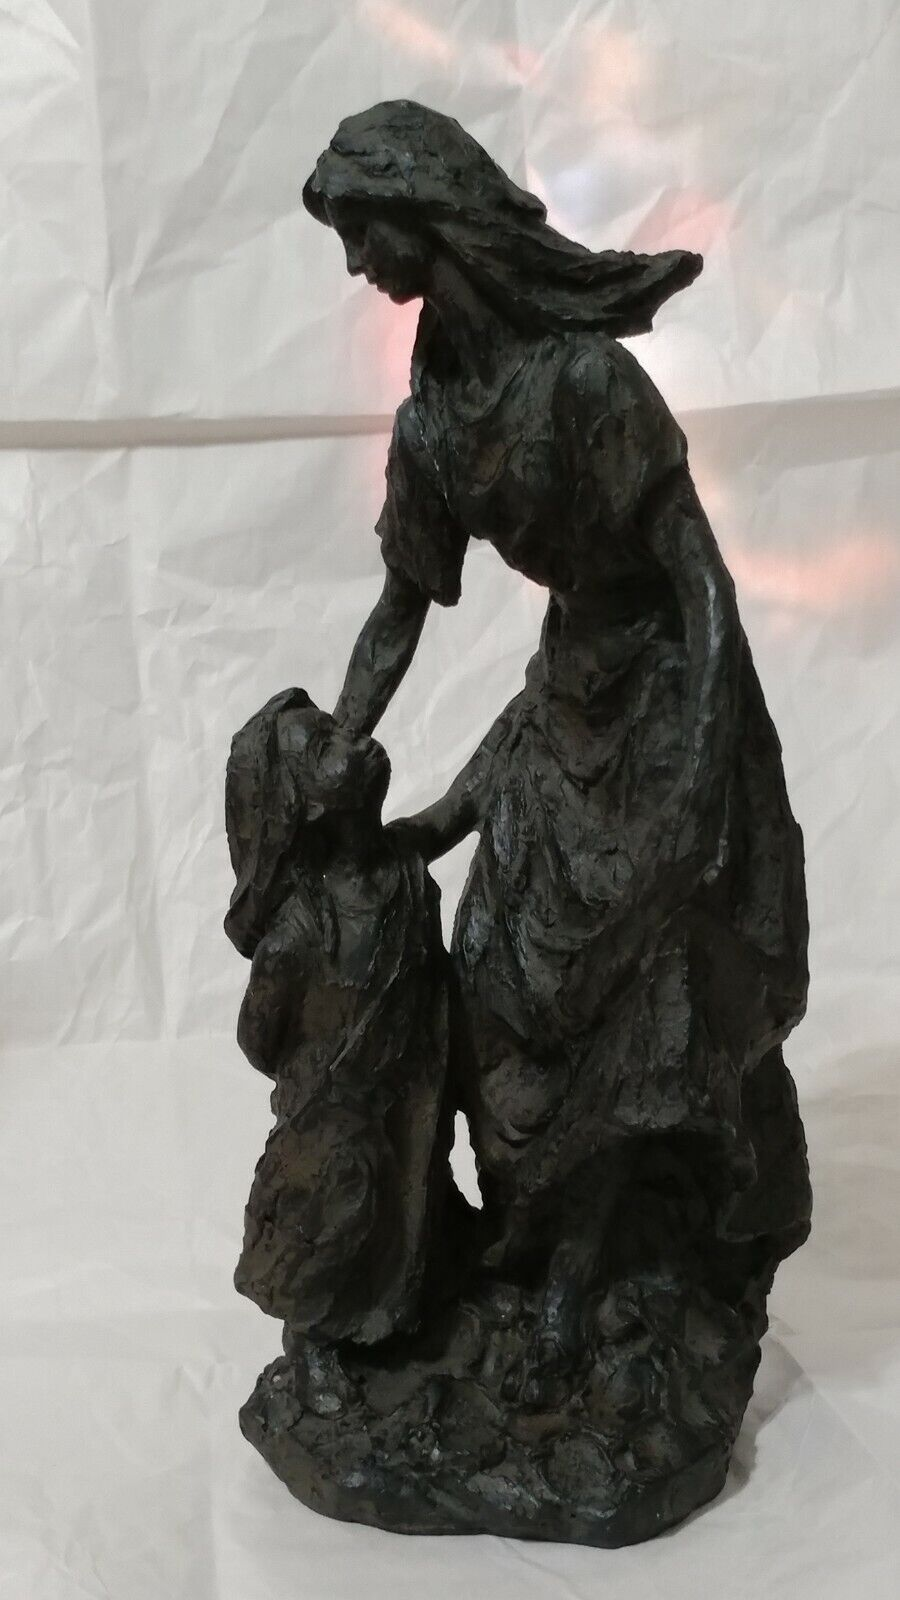 STATUE FIGURE OF WOMEN With Girl Child Kid 14 INCHES TALL  - $59.99